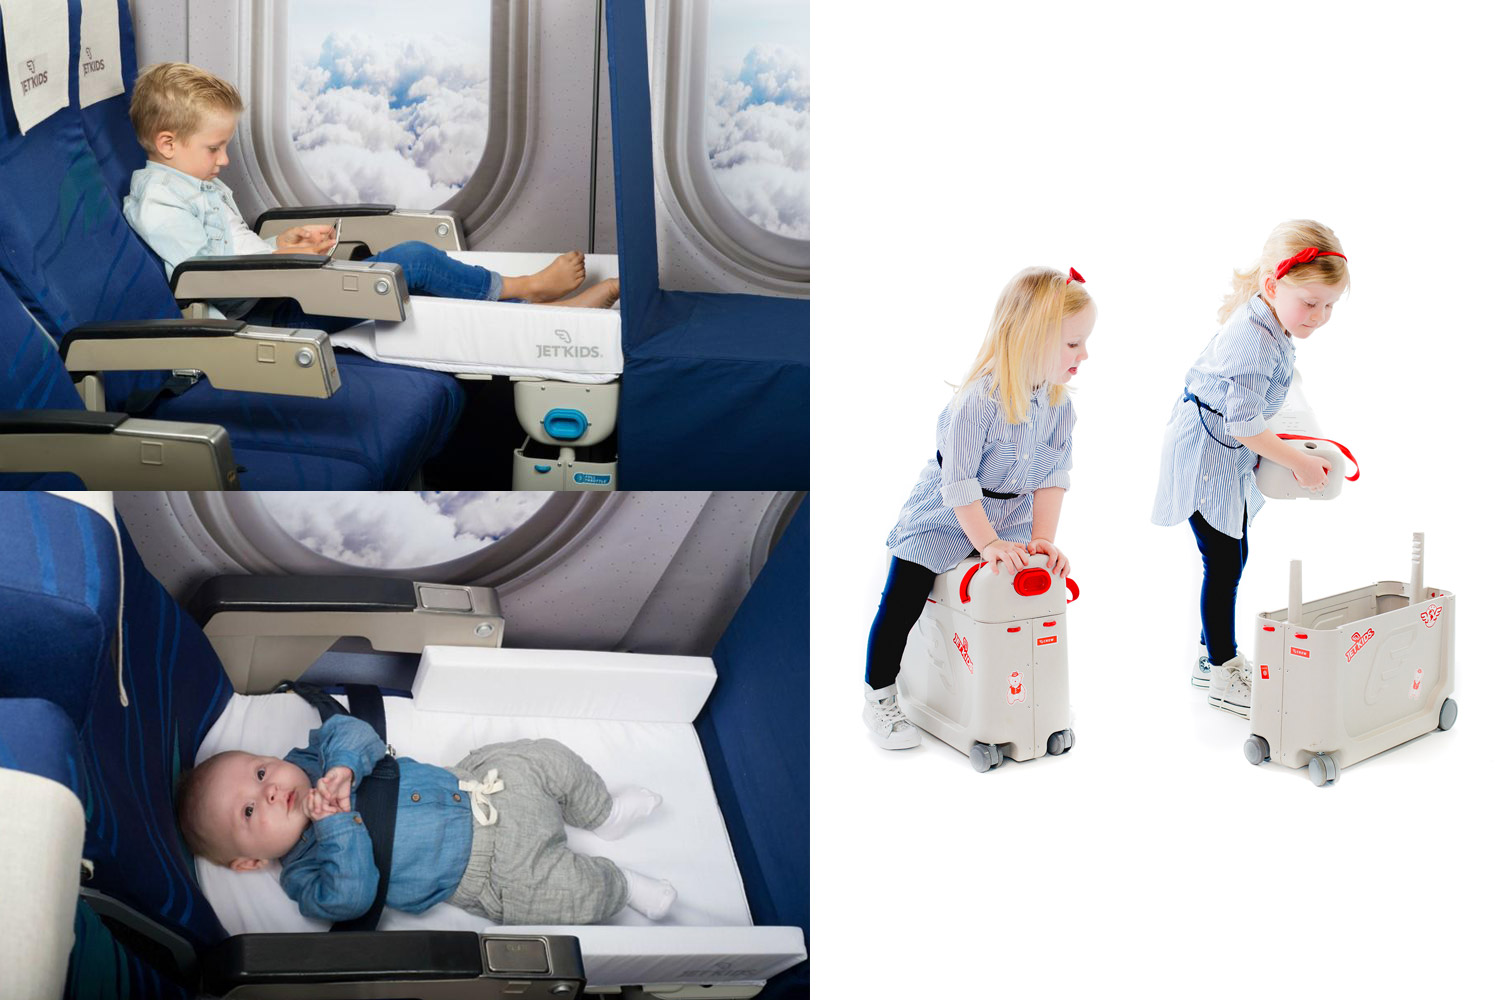 jetkids-bedbox-toddler-bed-for-plane